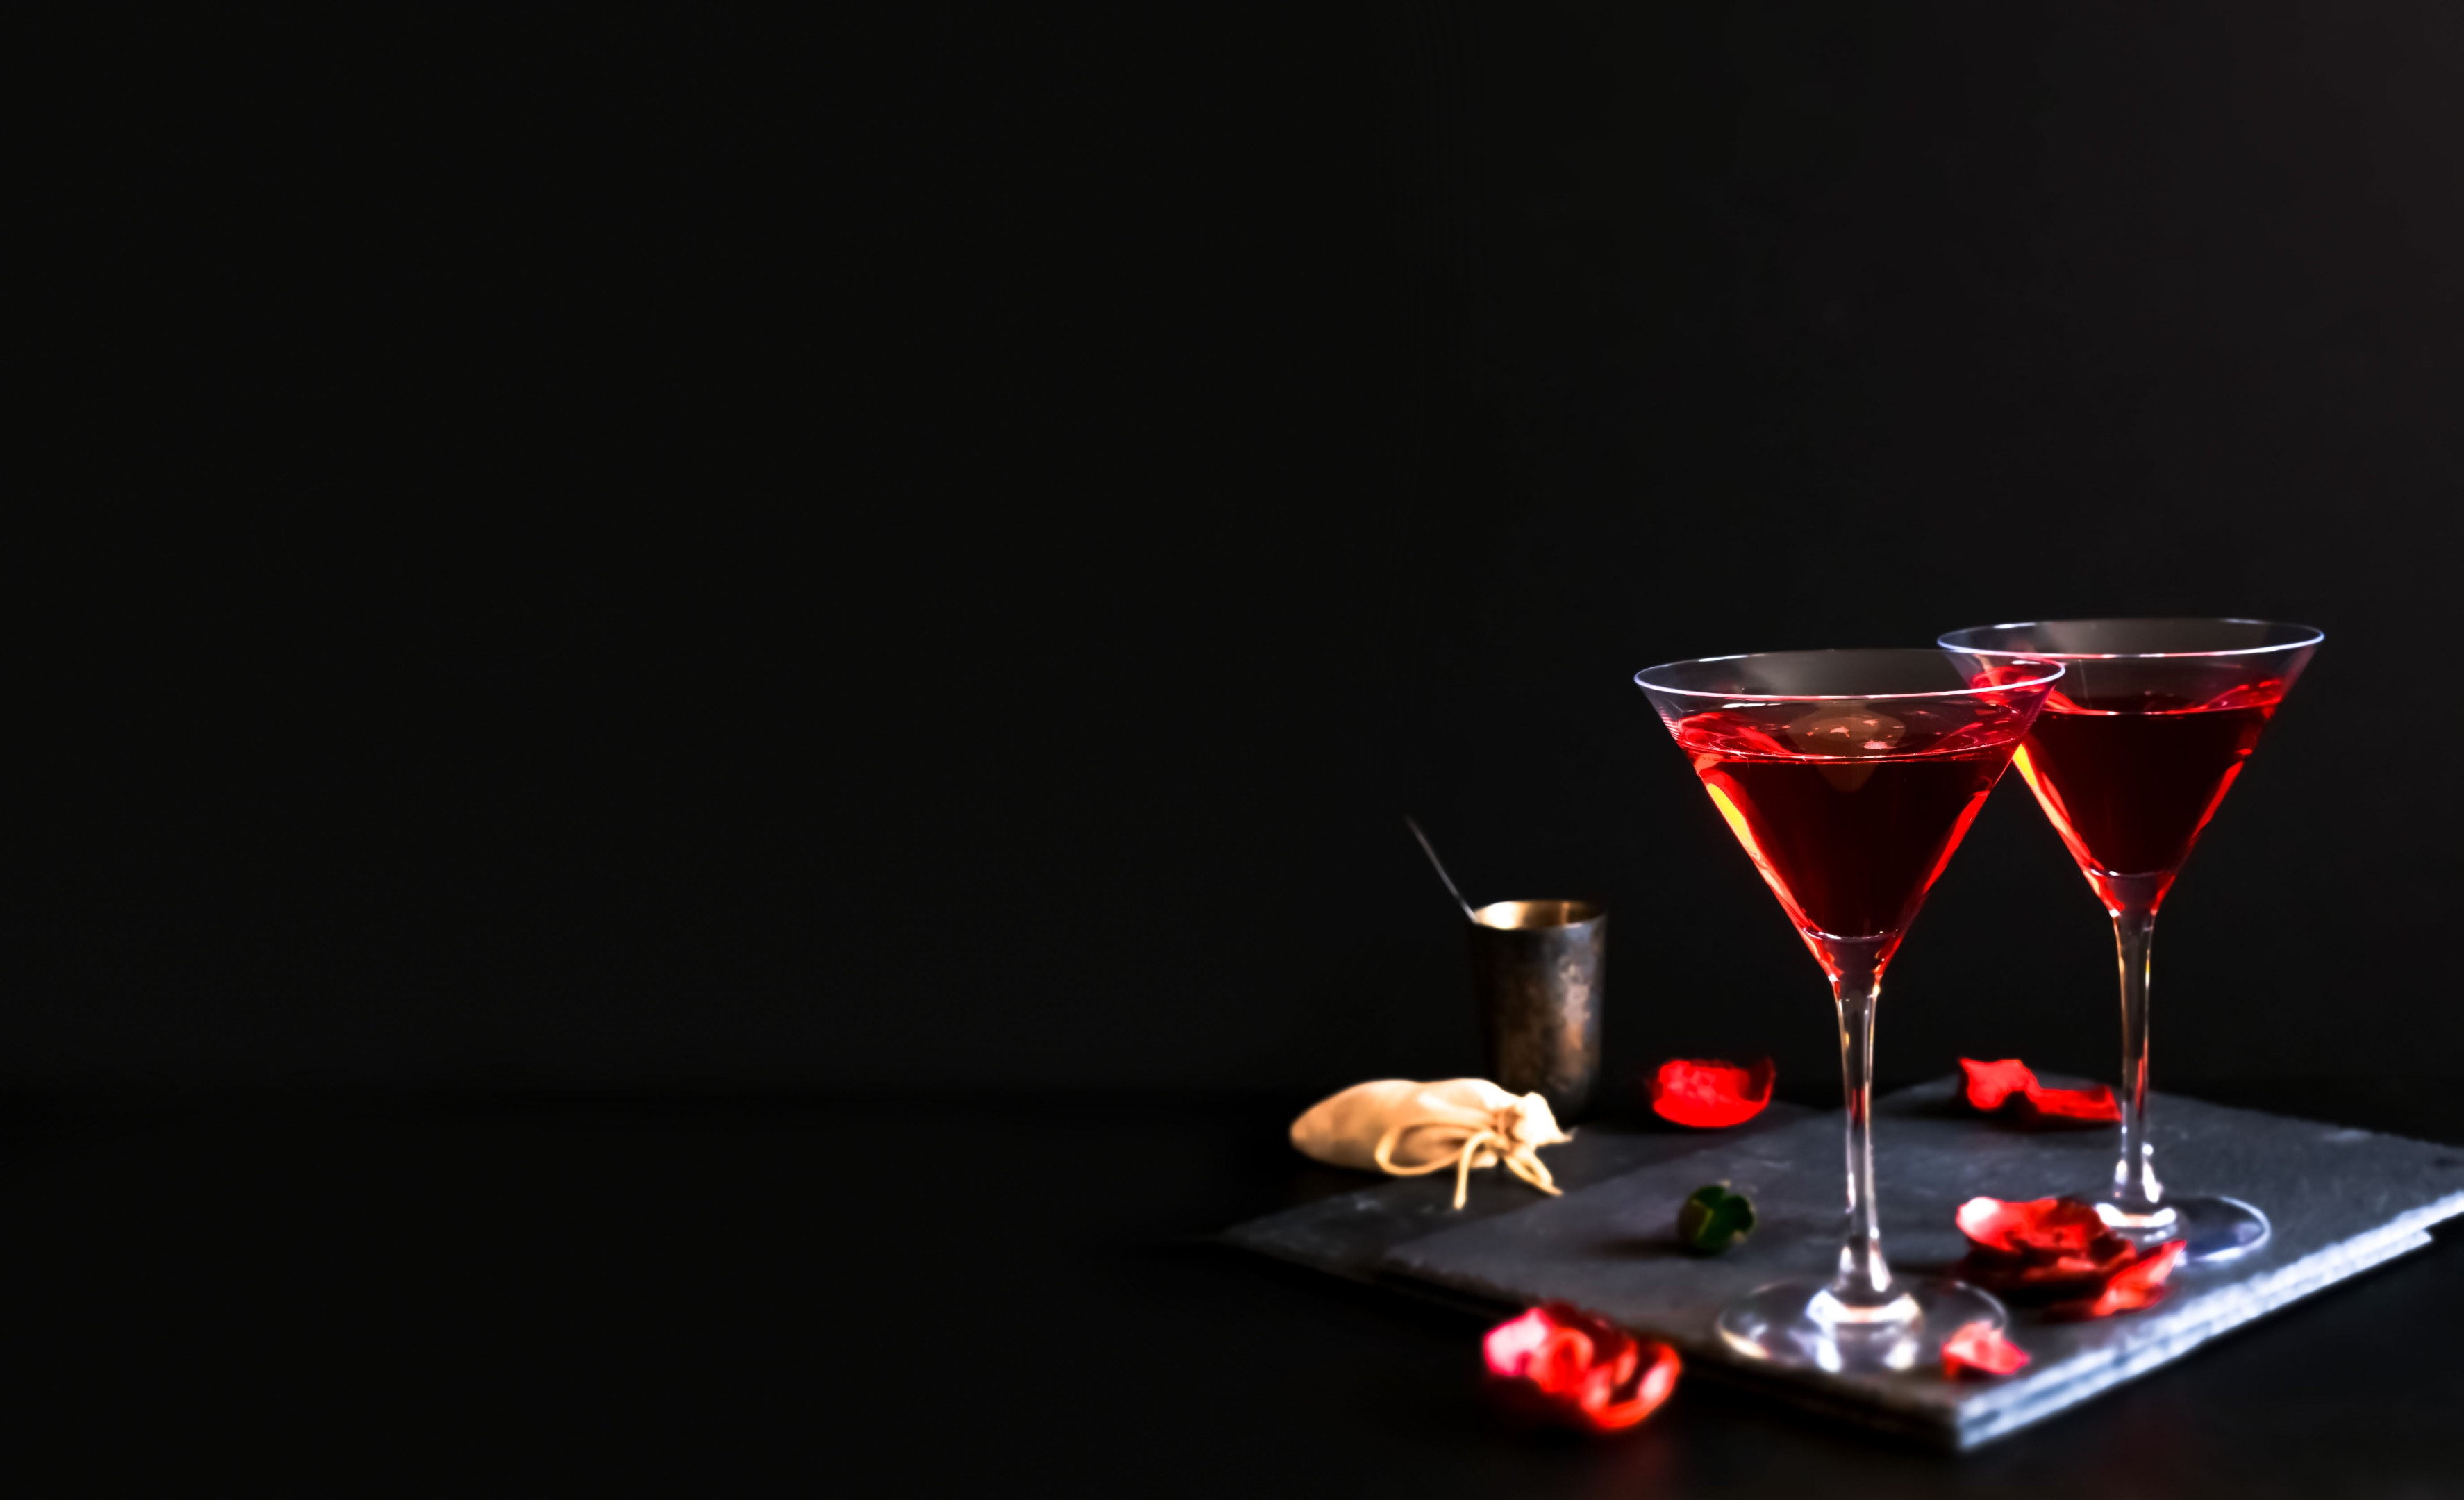 Two cosmopolitan cocktails in triangular glass